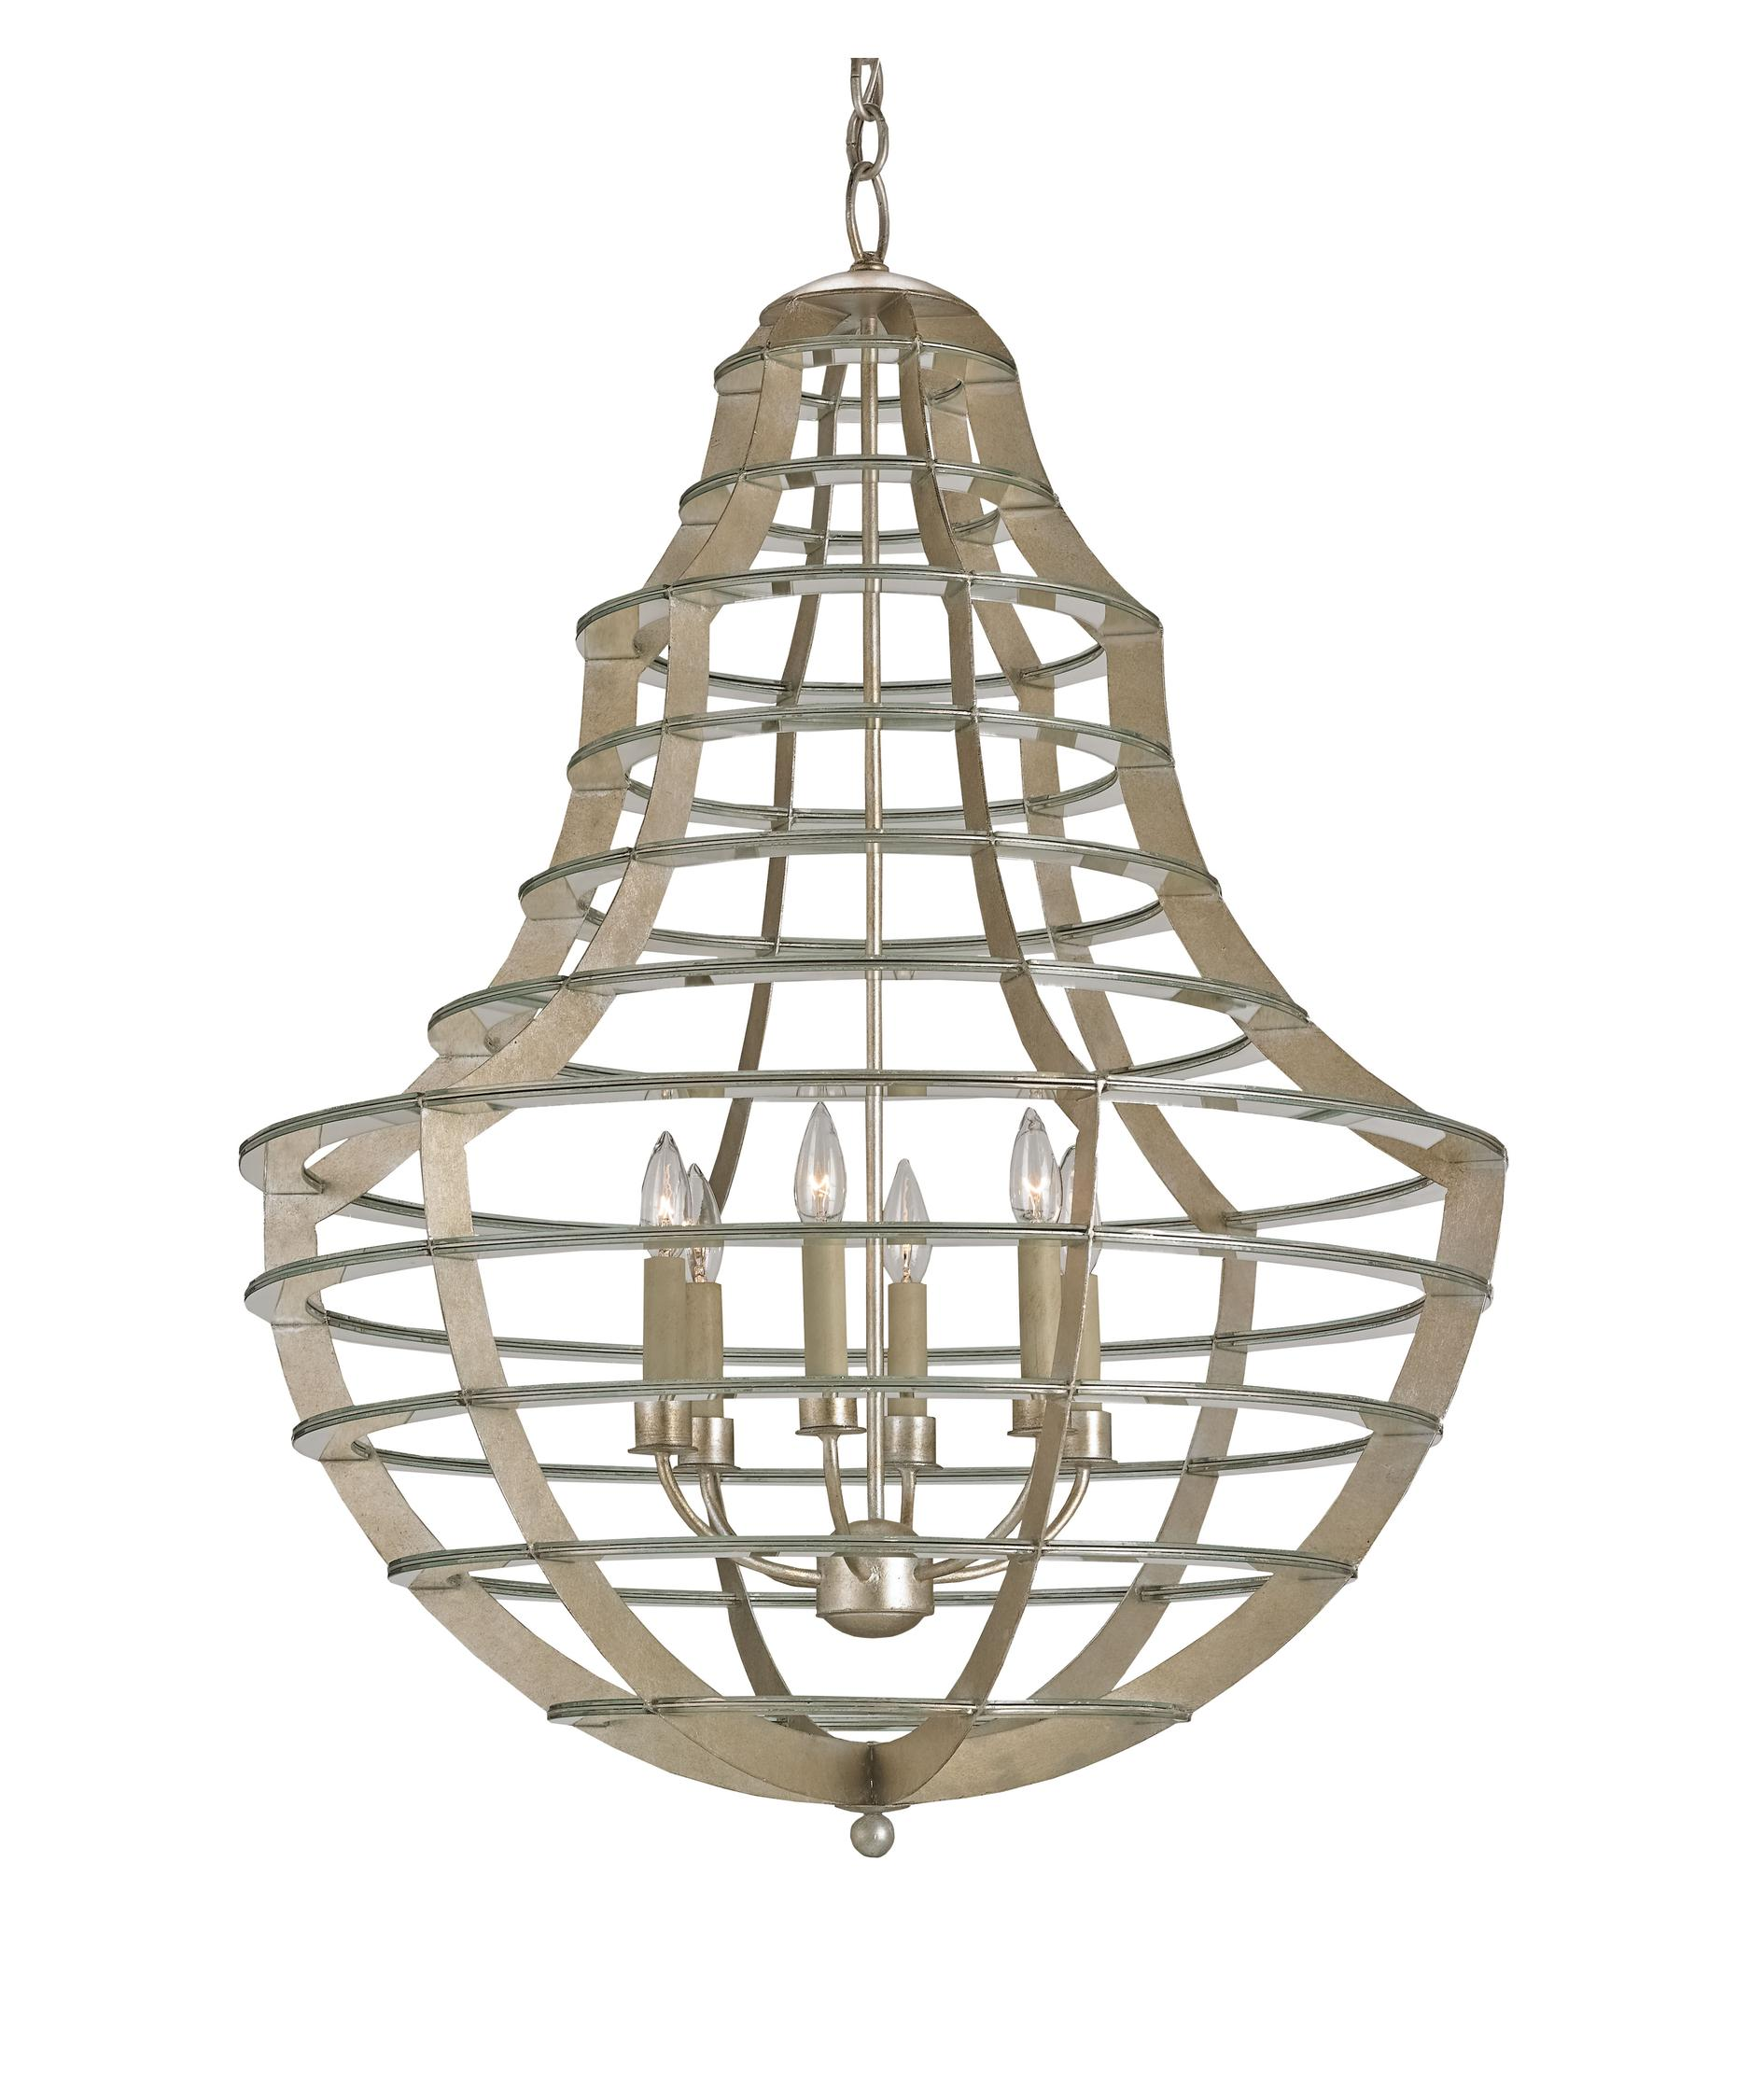 Currey and Company Everest 28 Inch Wide 6 Light Chandelier – Currey and Company Lighting Chandeliers